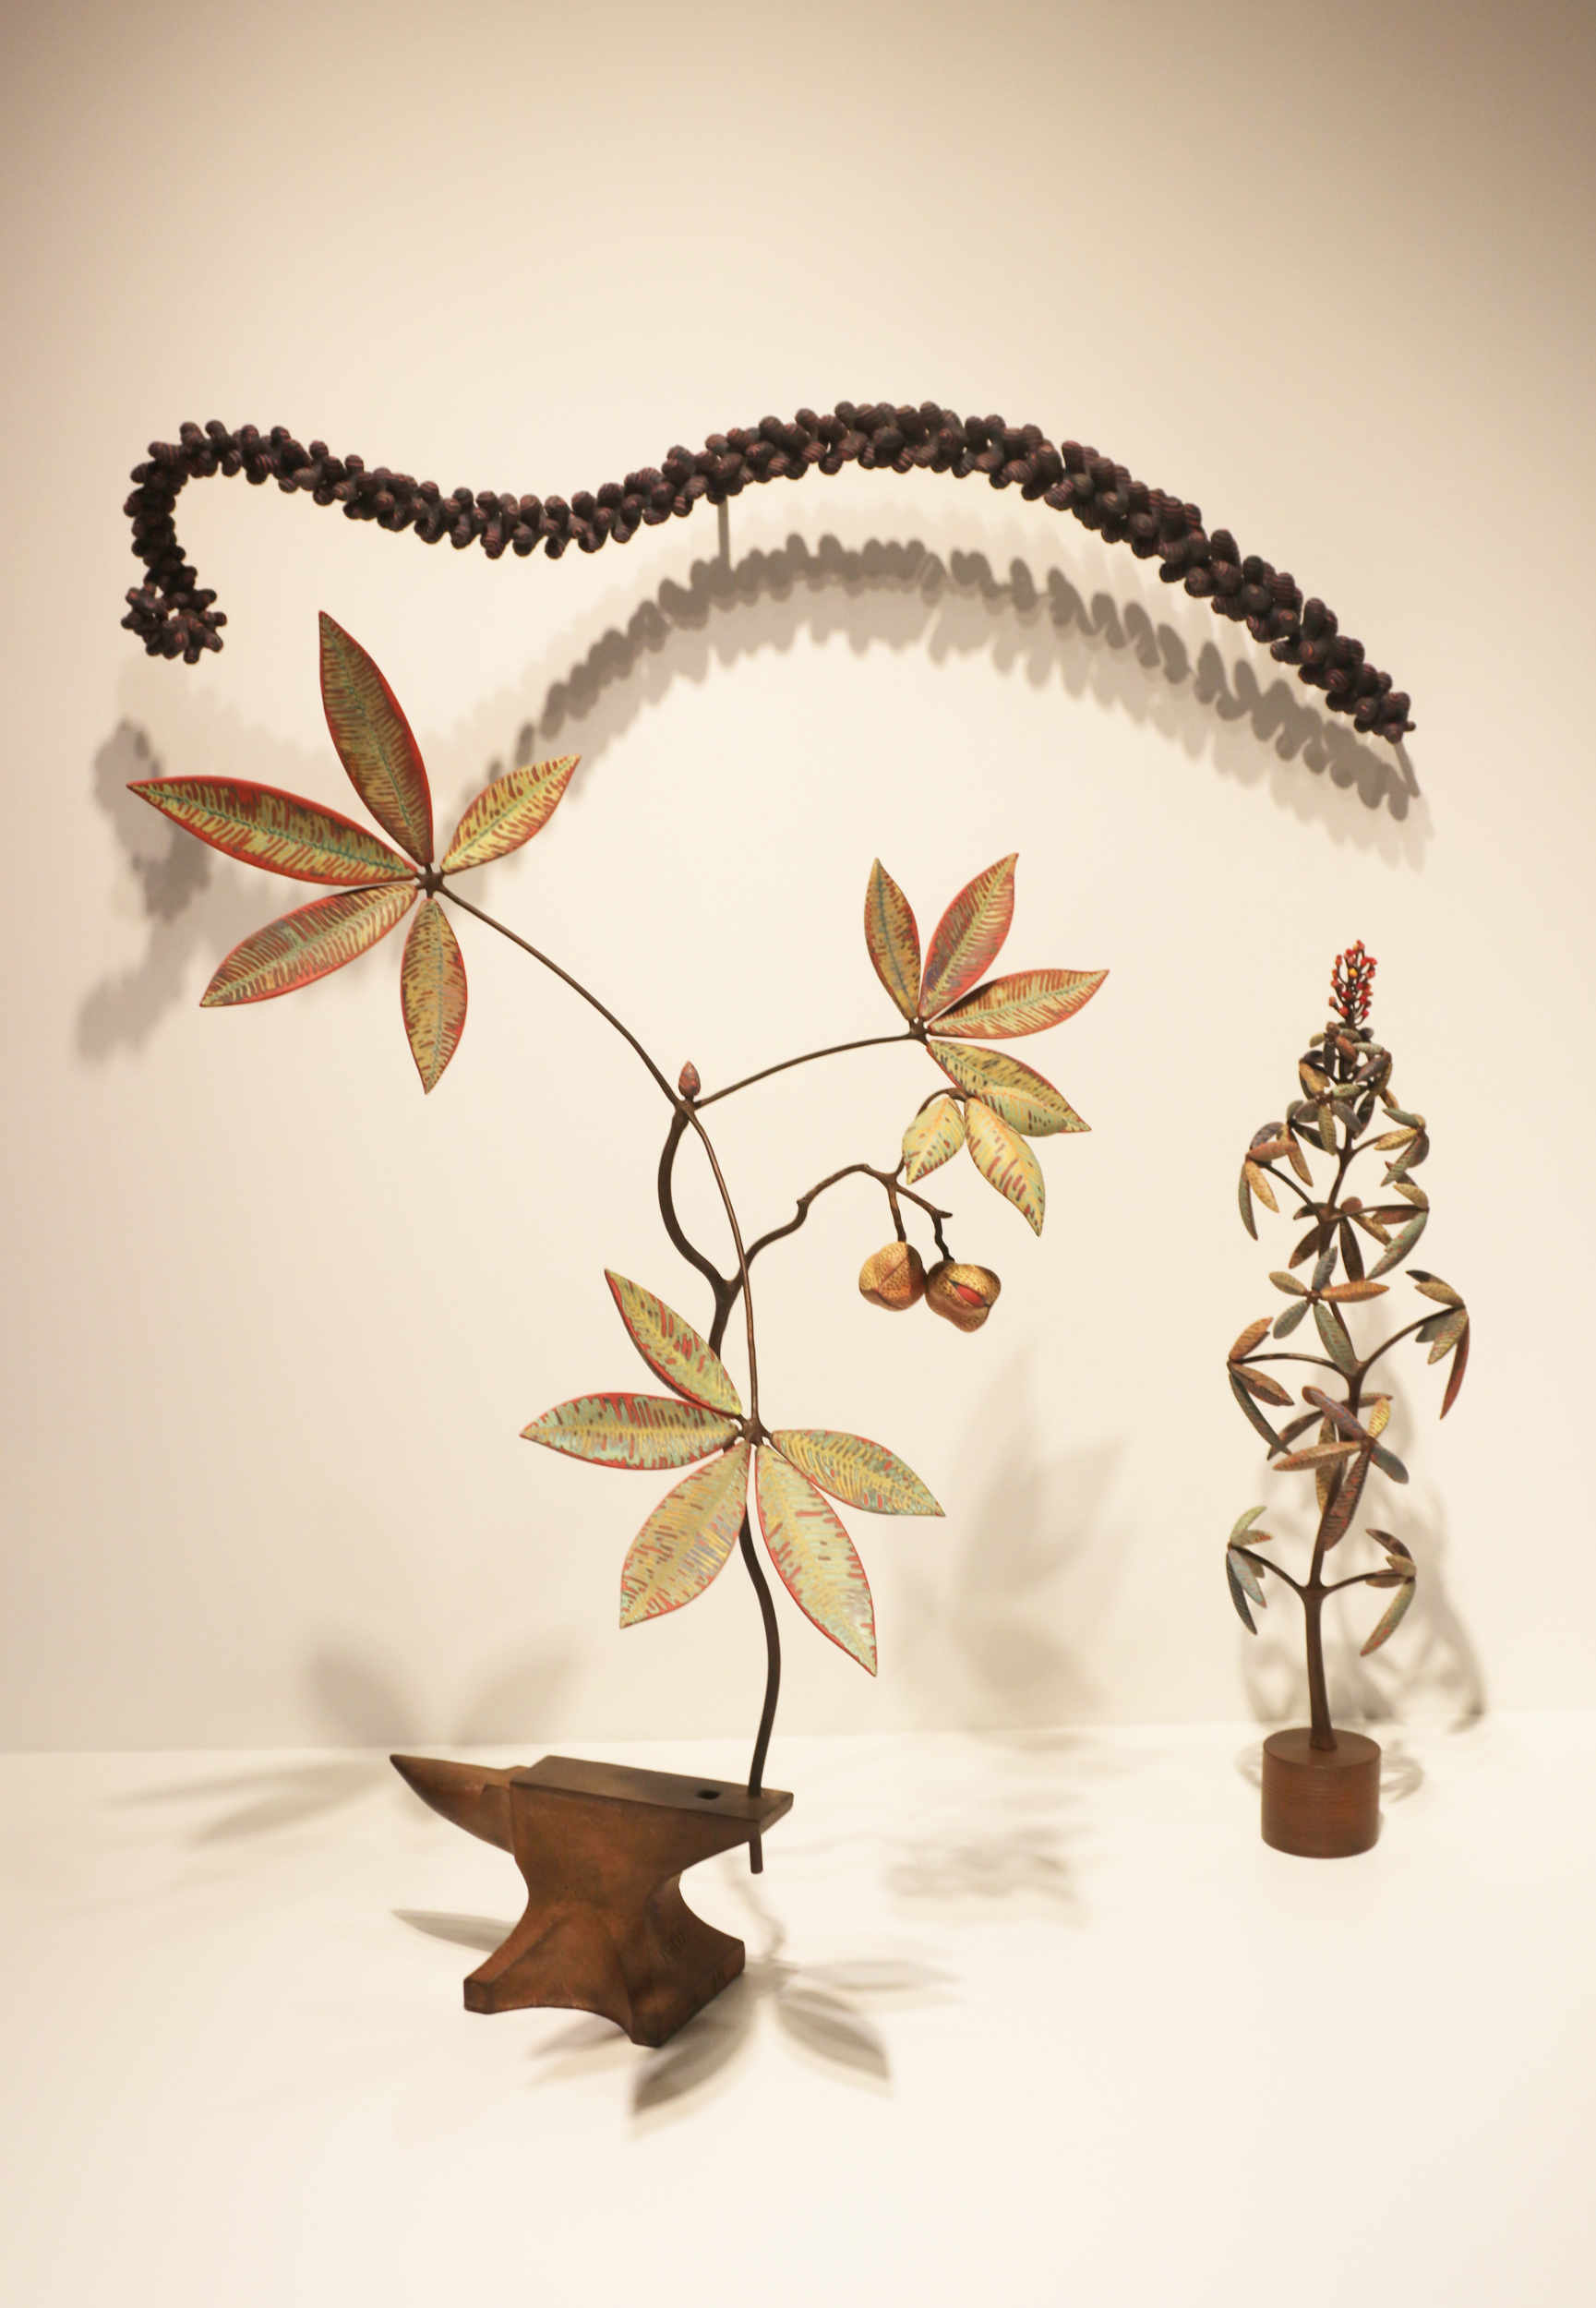 Michael Sherrill, Bumbleberry, Appalacian Moment and New Growth Maquette 1999. Porcelain, abraded glaze, alloy steel.